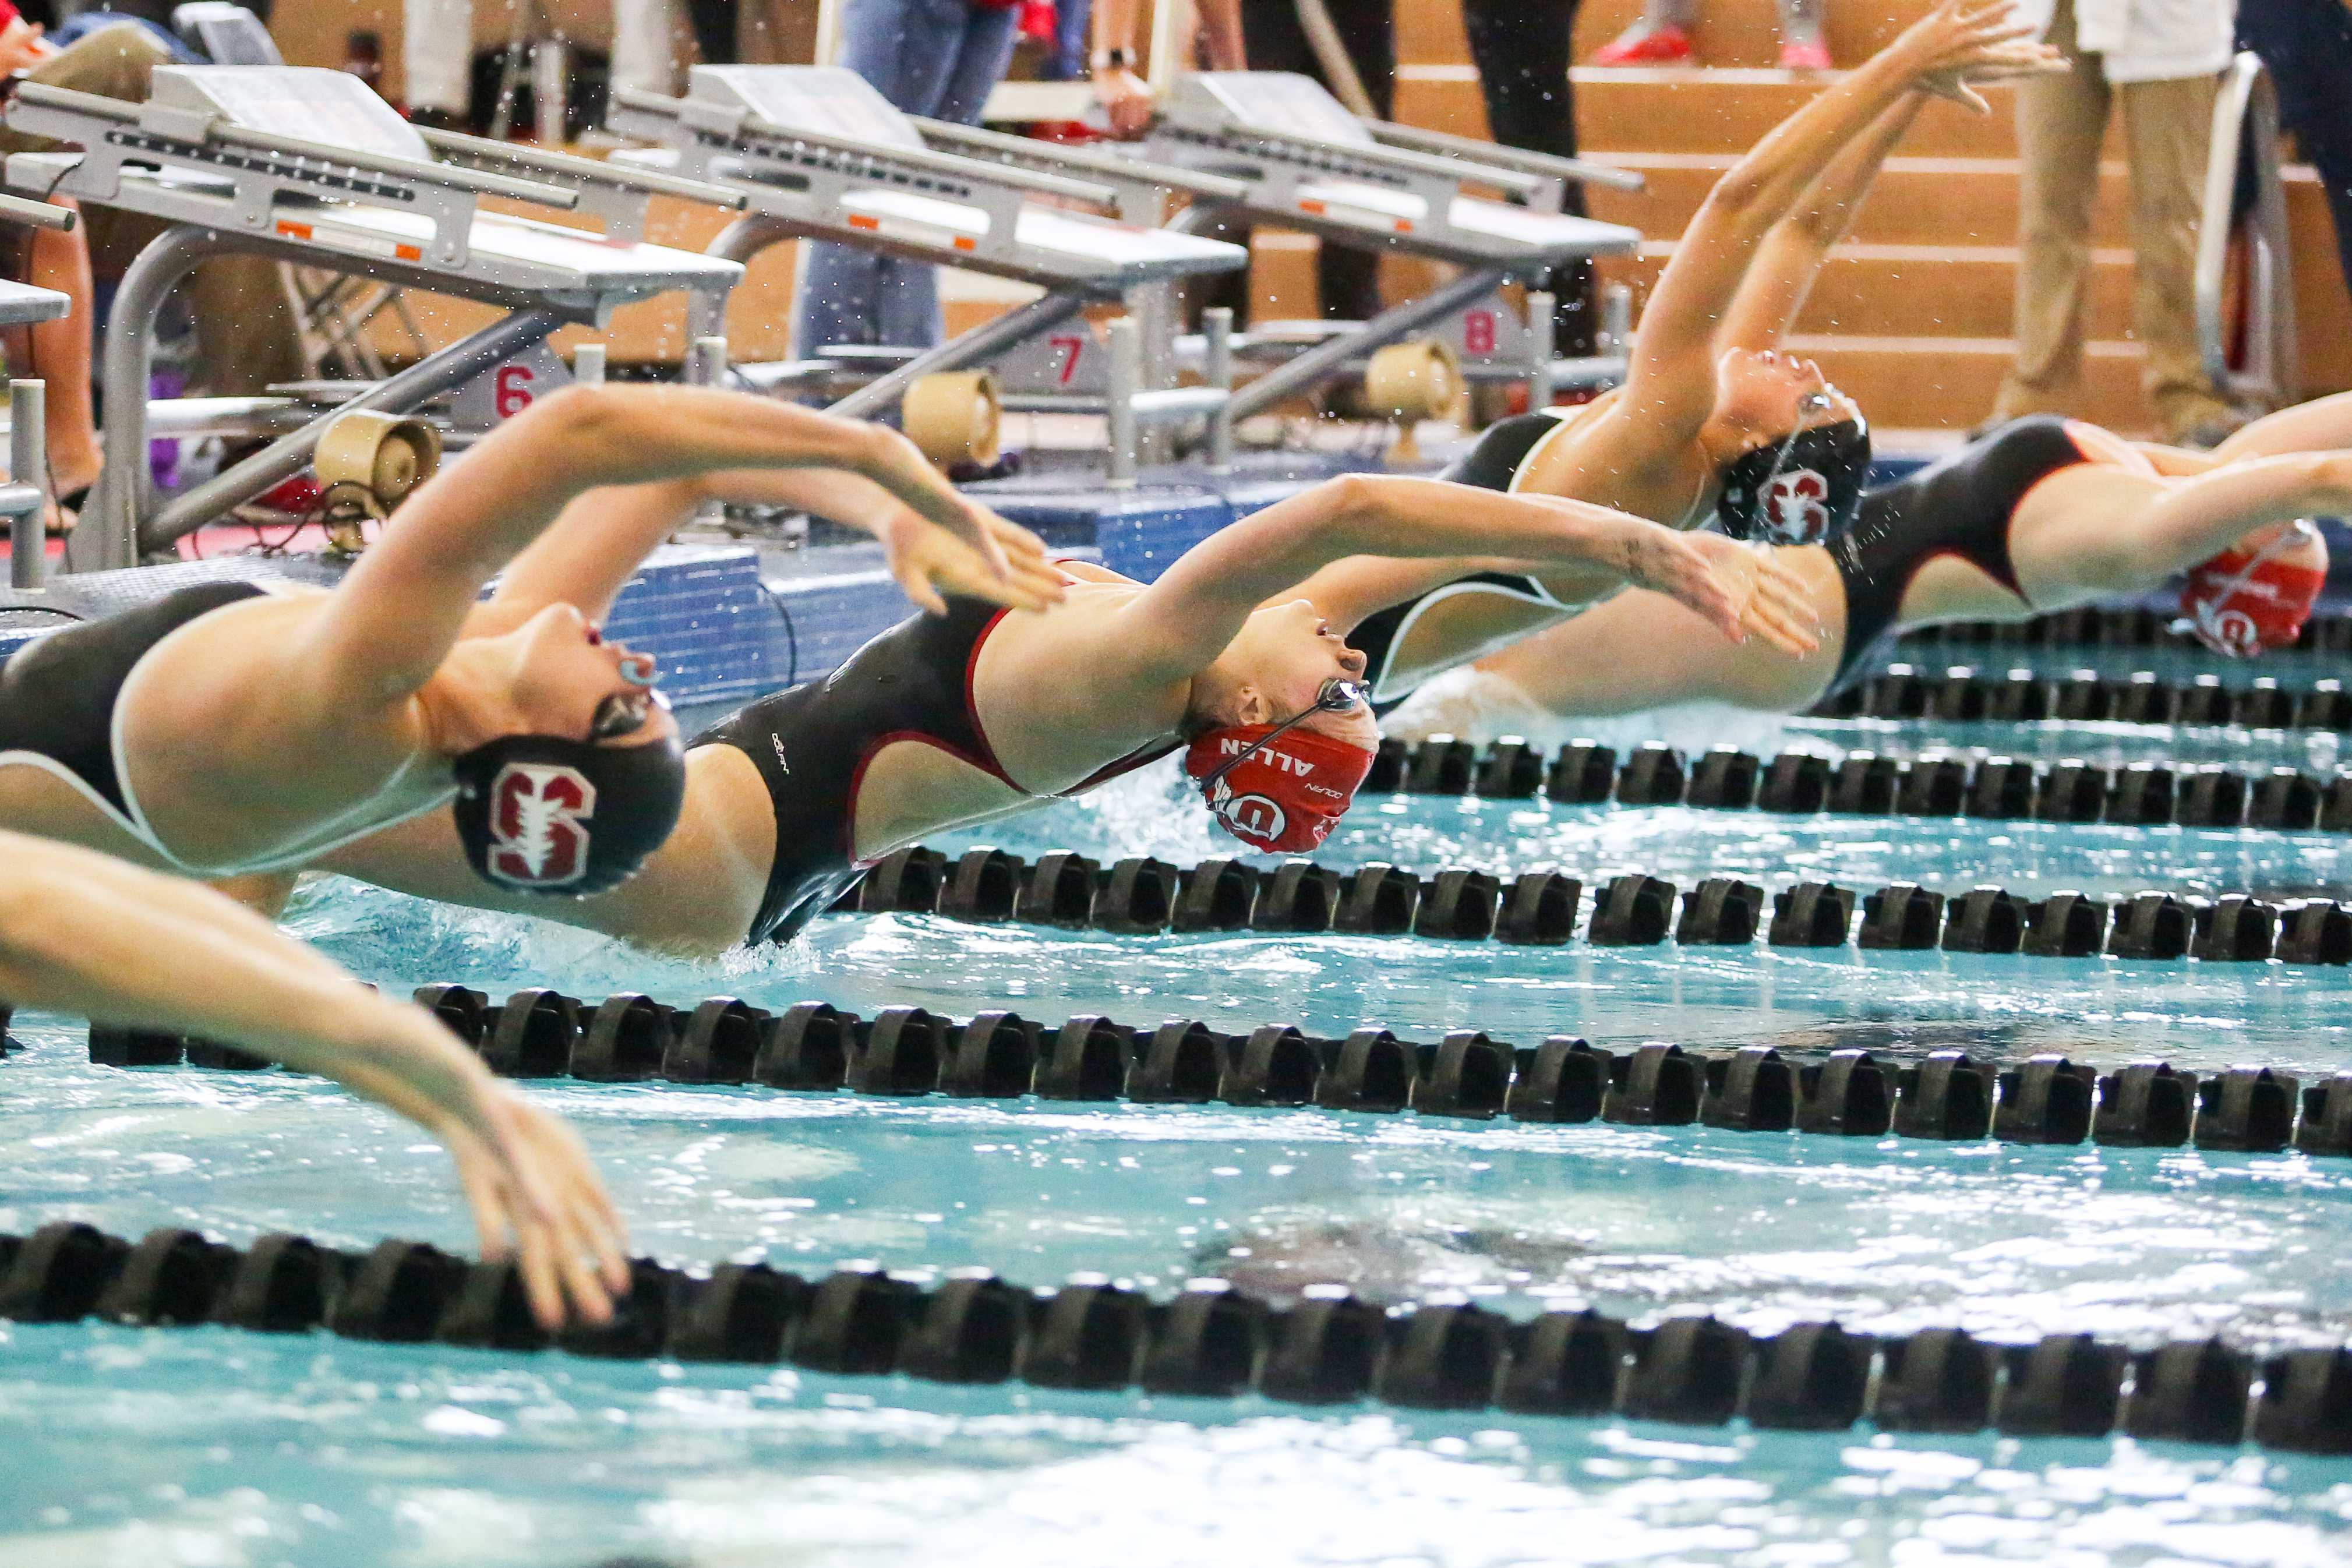 Sophomore Mallory Allen starts out for the Women's 200 Back as the Utah Men and Women's Swim and Dive Team take on the Stanford Cardinals at the Ute Natatorium in Salt Lake City, UT on Friday, Oct. 20, 2017.  (Photo by Curtis Lin/ Daily Utah Chronicle)